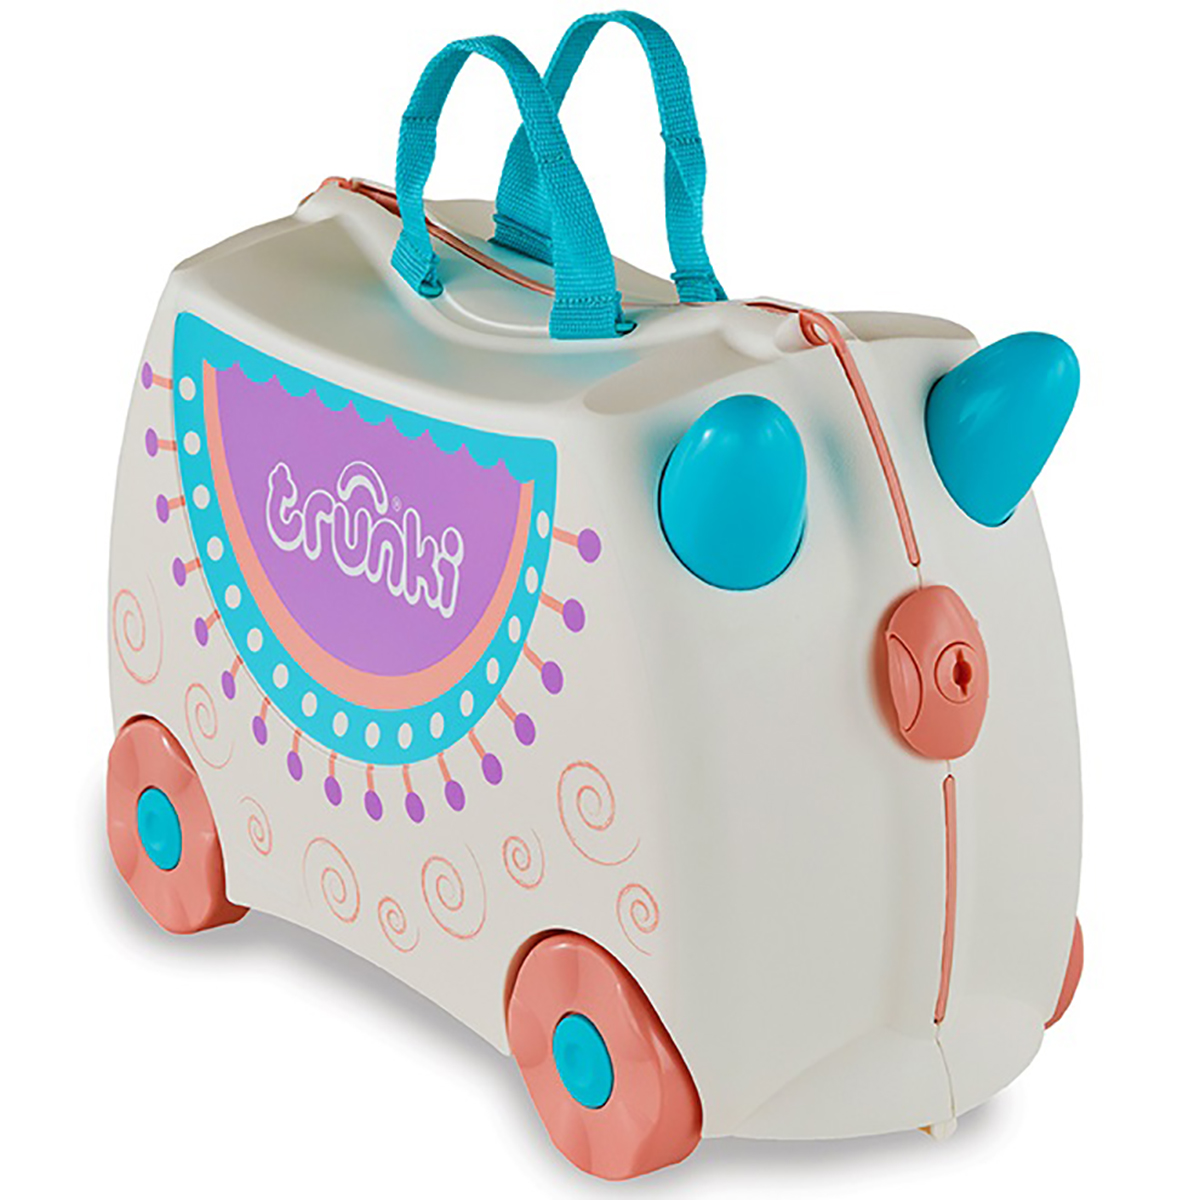 Valiza pentru copii Trunki Ride-On Lola The Llama, Gri imagine 2021